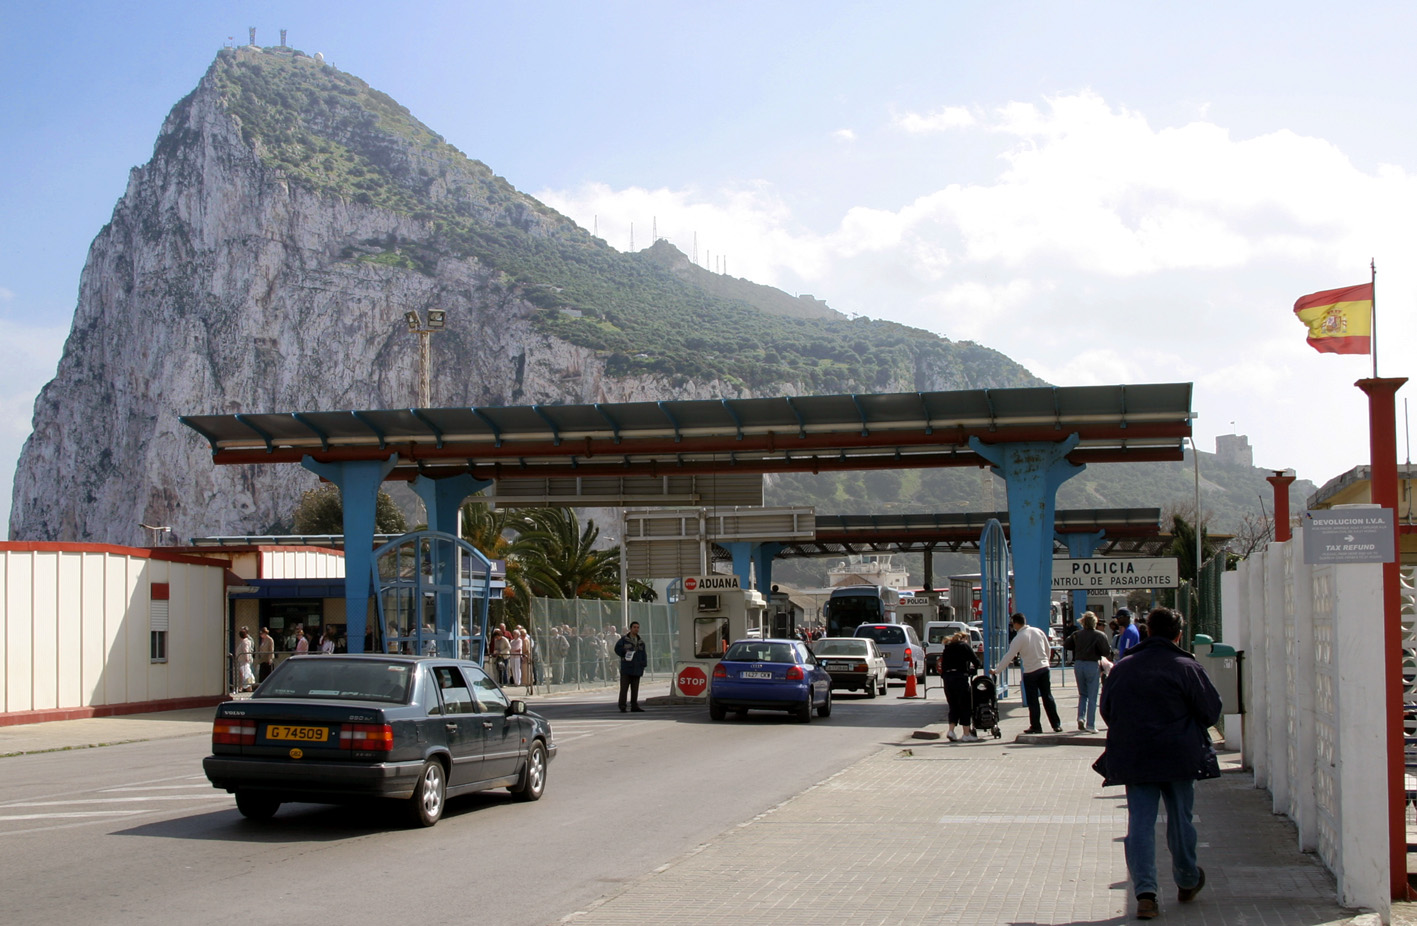 http://upload.wikimedia.org/wikipedia/commons/f/f0/Gibraltar_Border.jpg